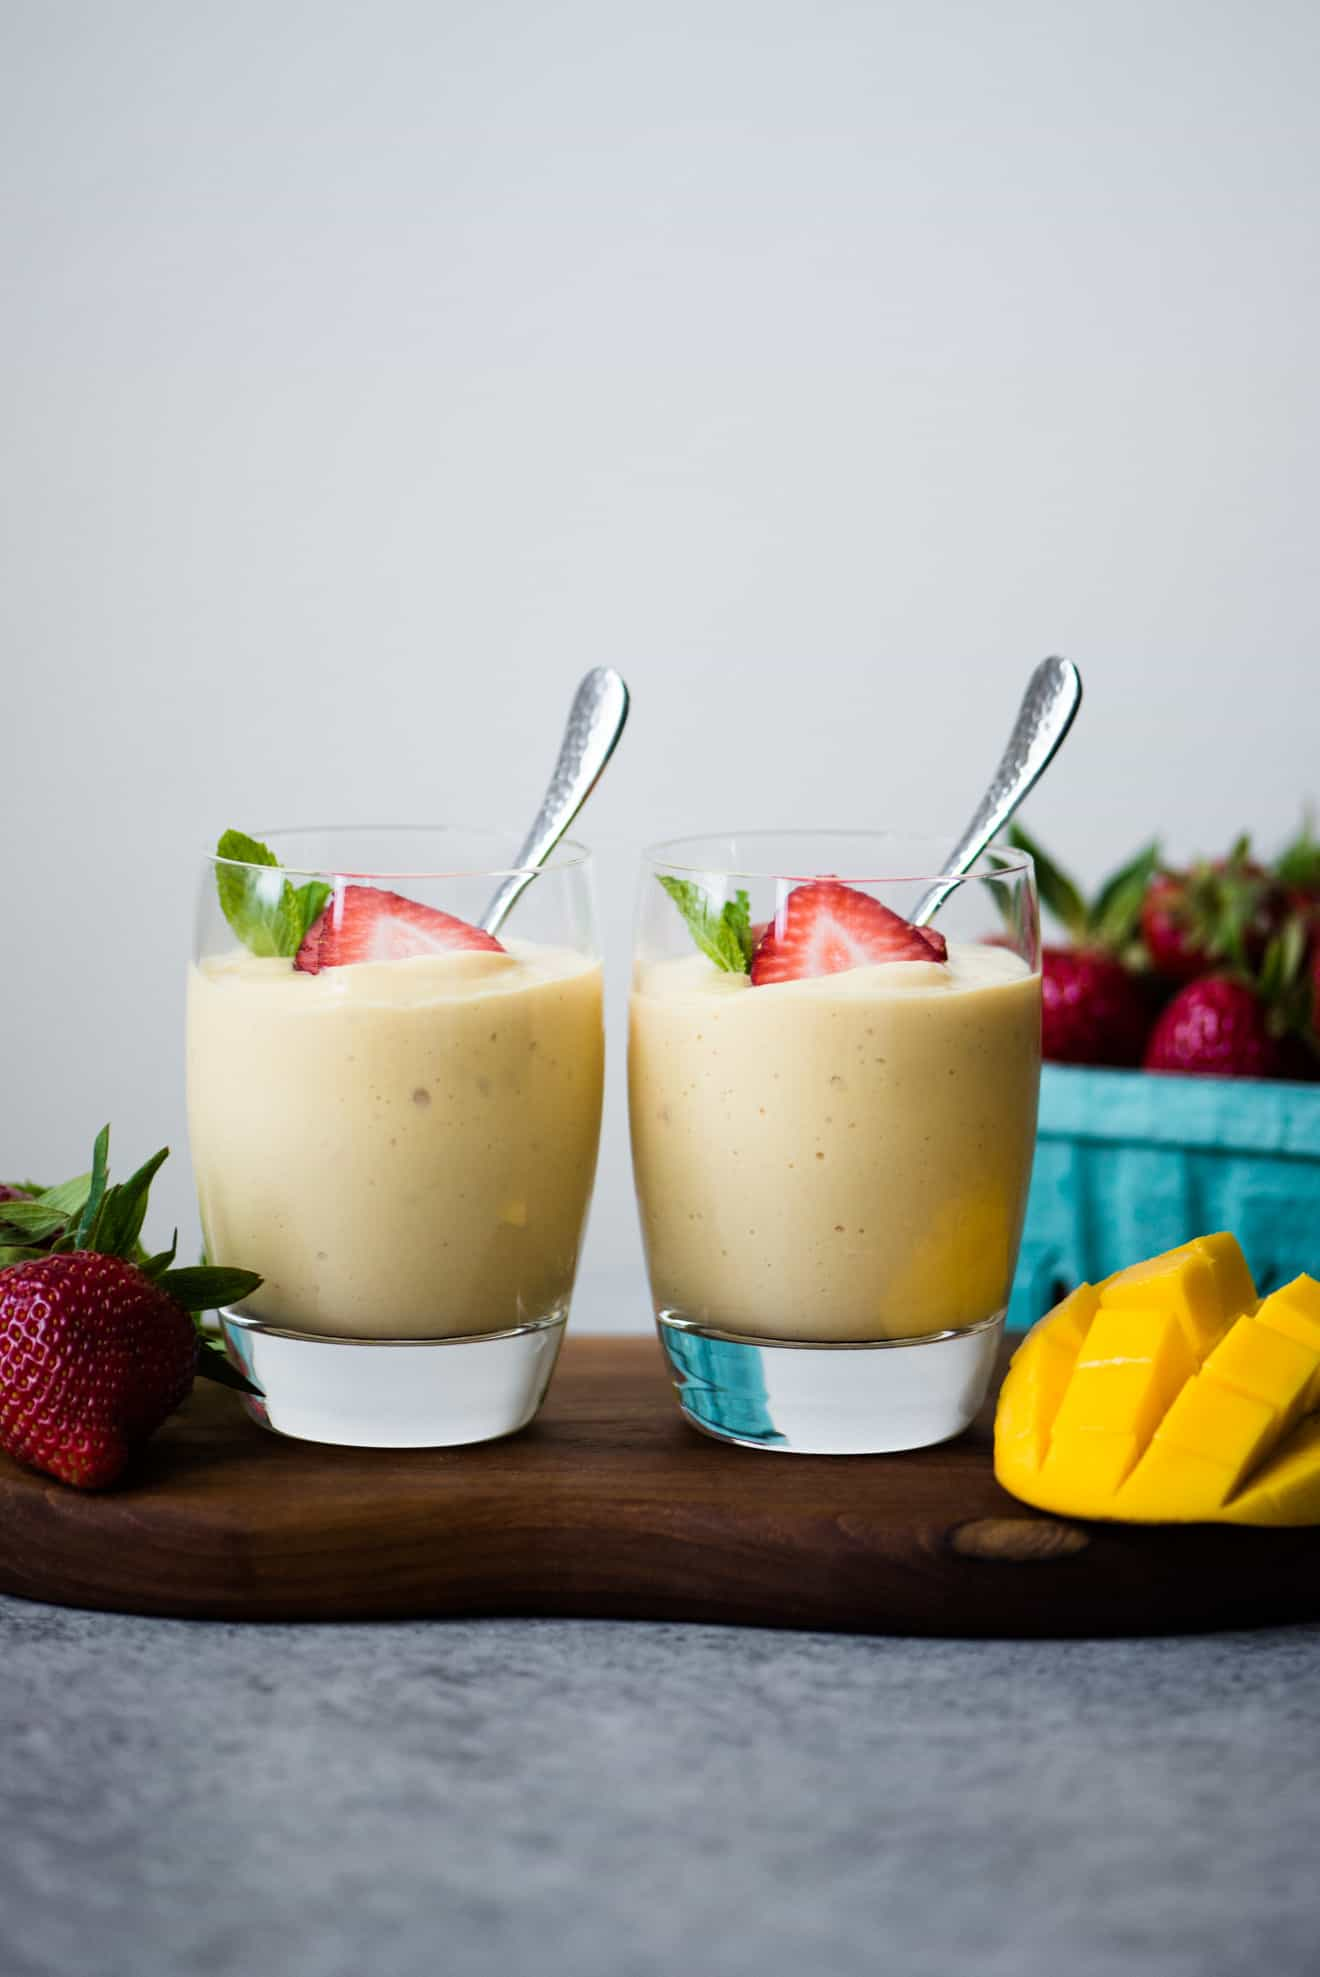 Vegan Mango and Pineapple Mousse - easy dessert made with just 5 ingredients! dairy free + gluten free!